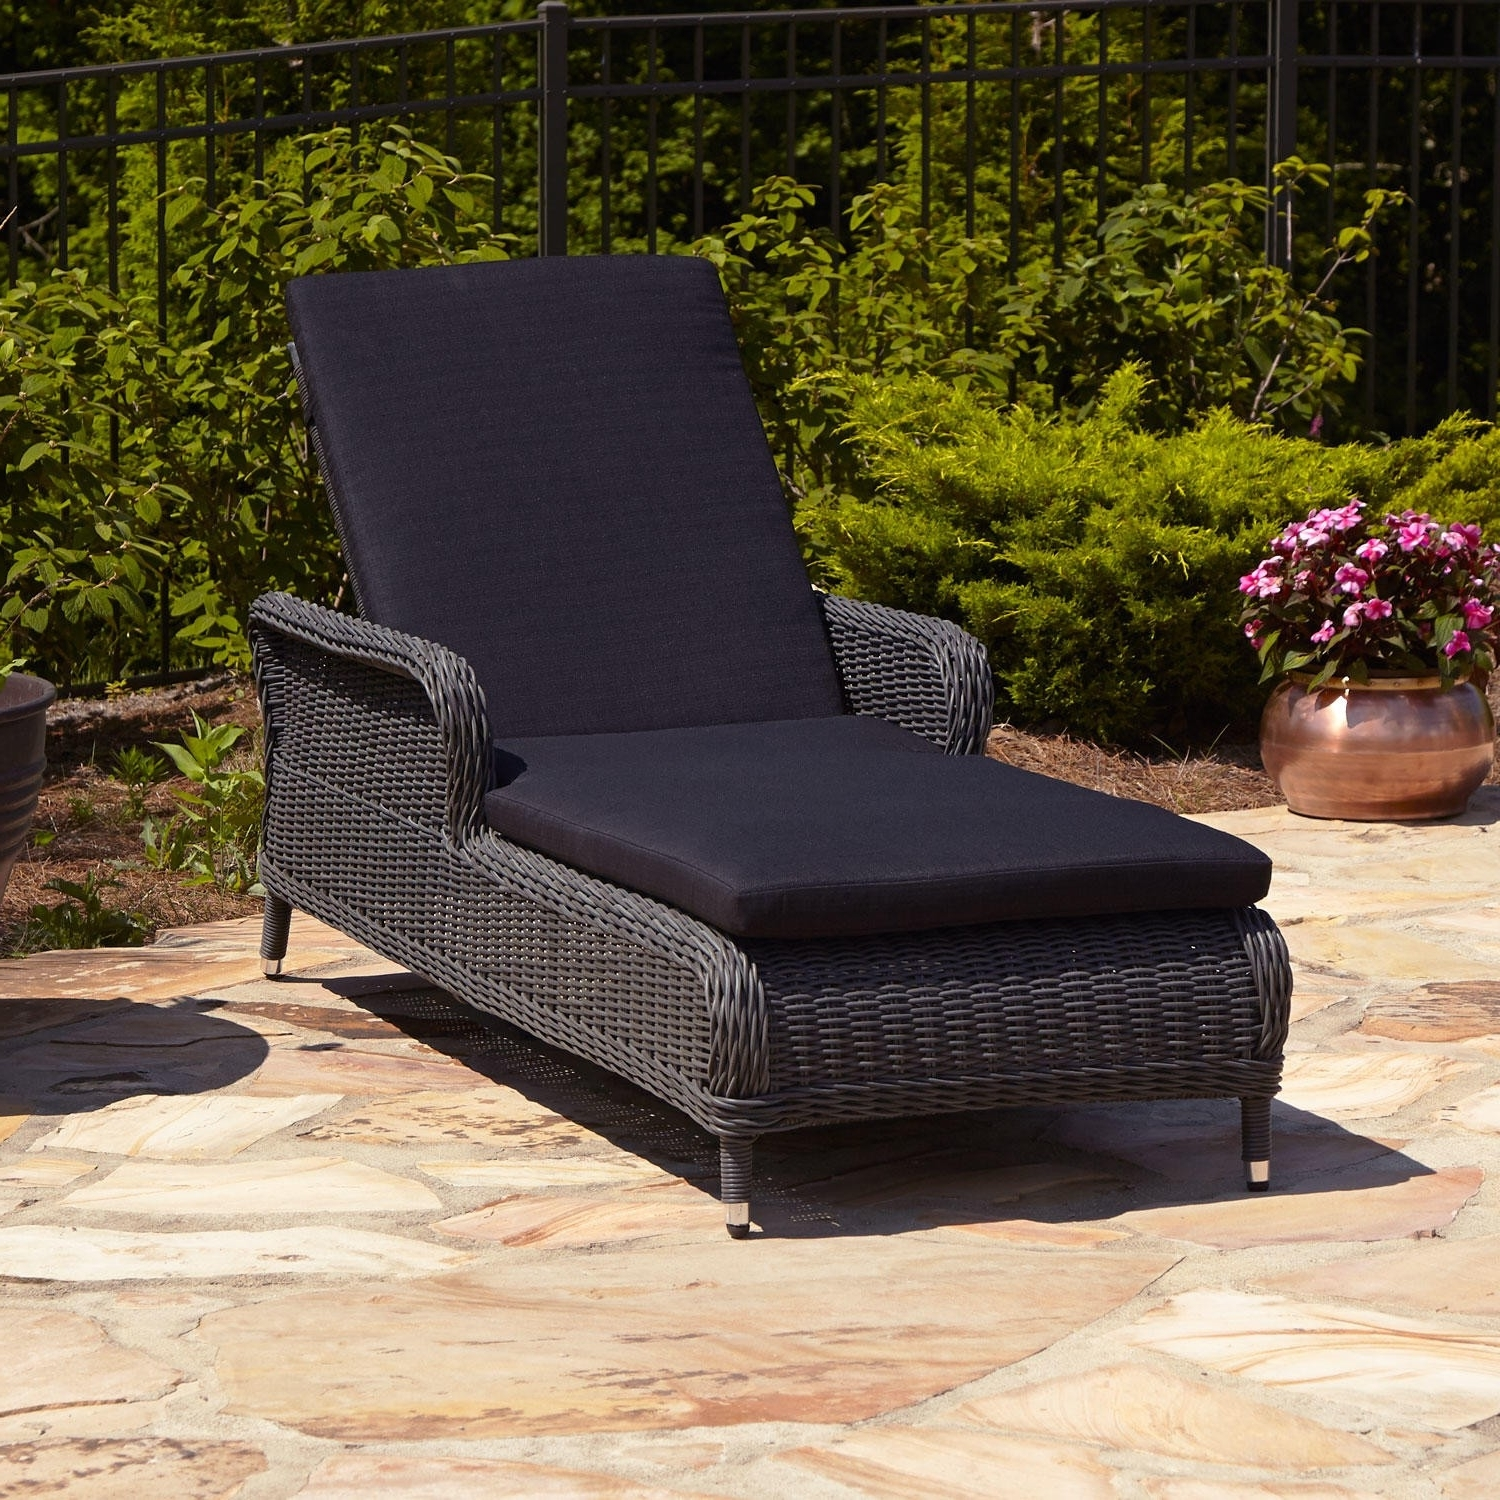 Remarkable Wicker Chaise Lounge Chair Gray Patio Furniture All Throughout Recent Wicker Outdoor Chaise Lounges (View 9 of 15)